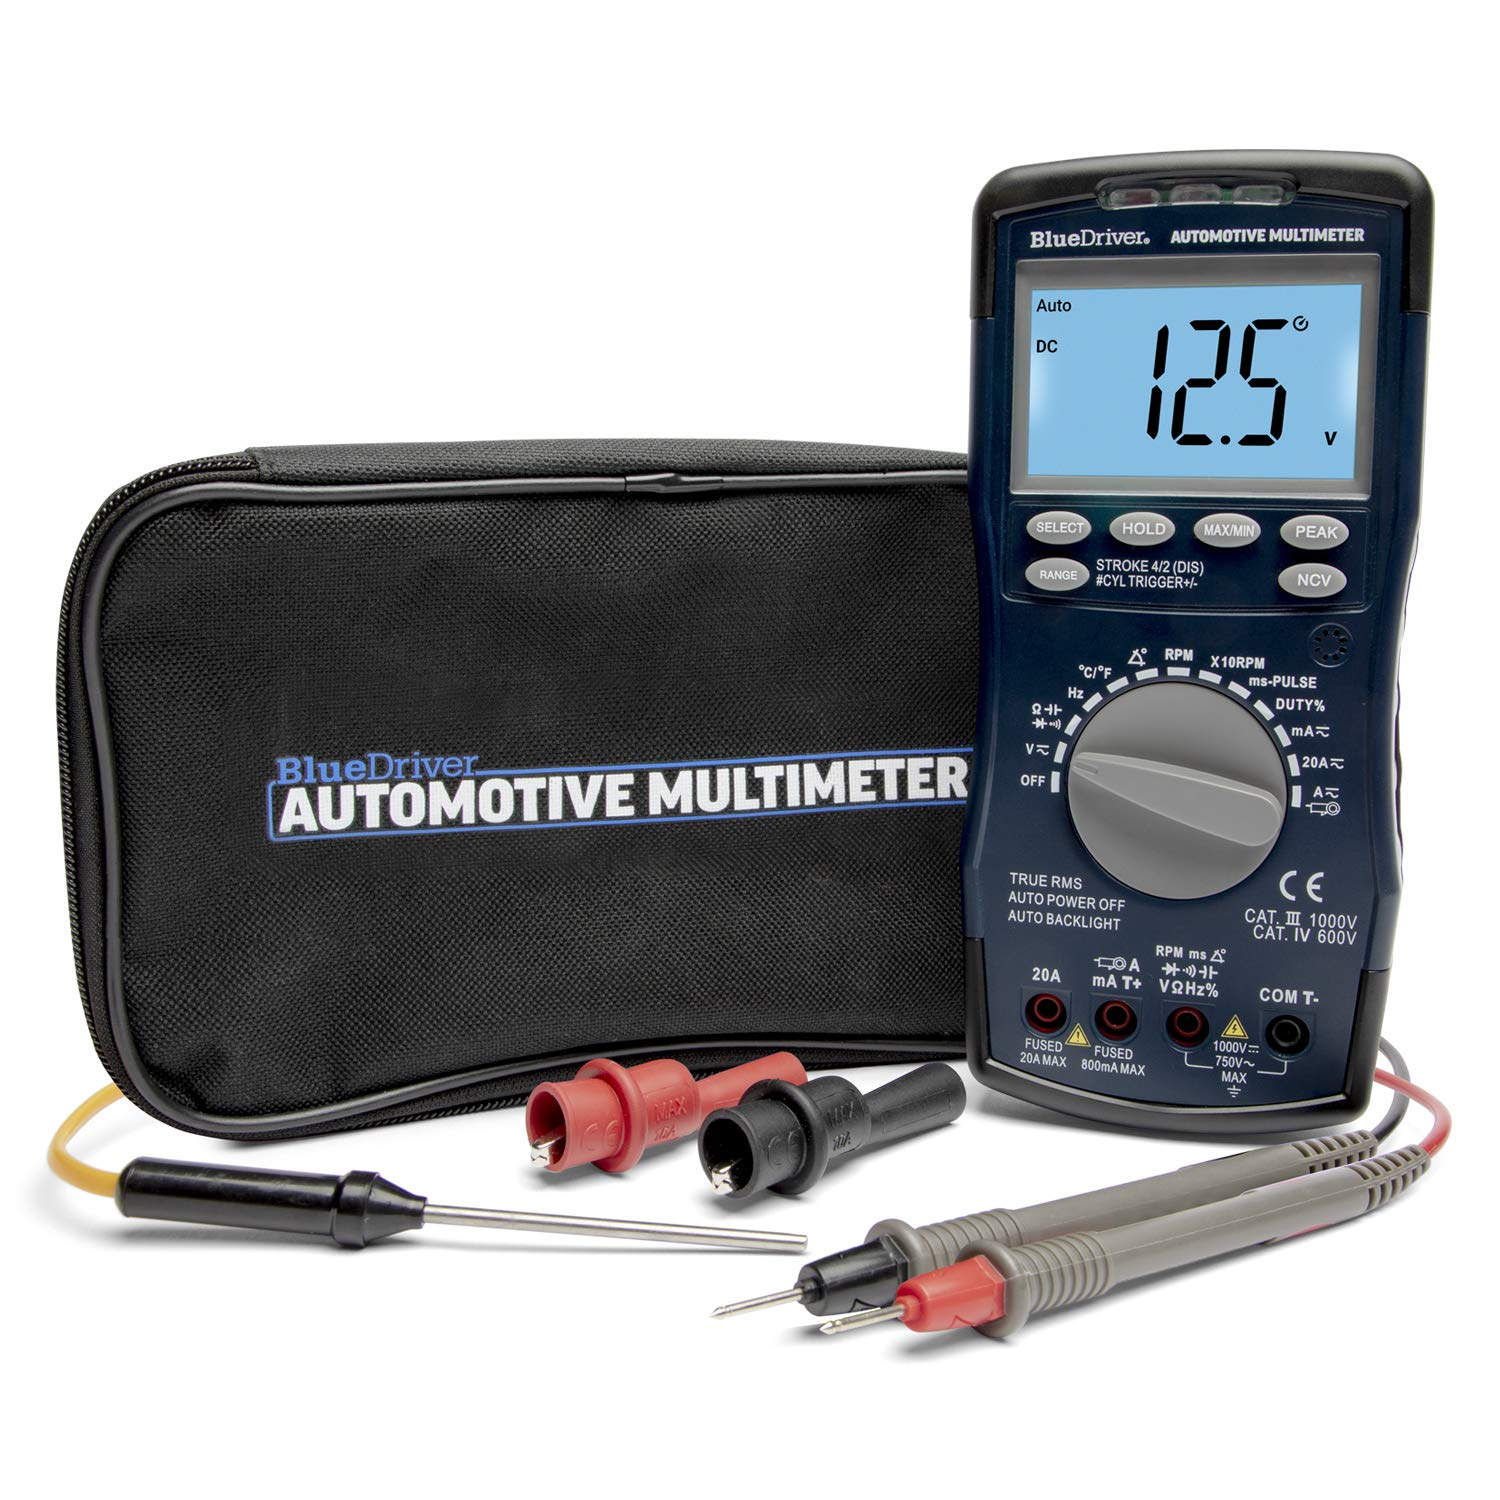 BlueDriver Automotive Multimeter (Auto Ranging)